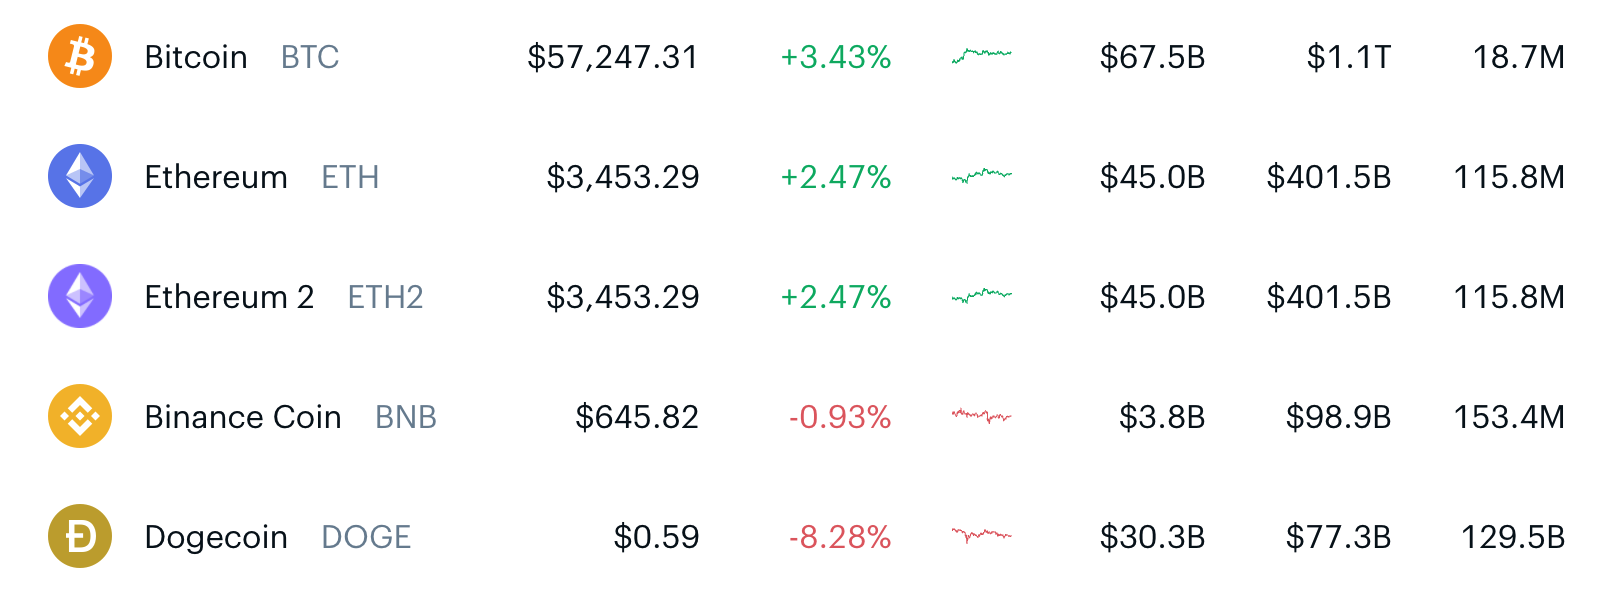 Coin prices from Coinbase